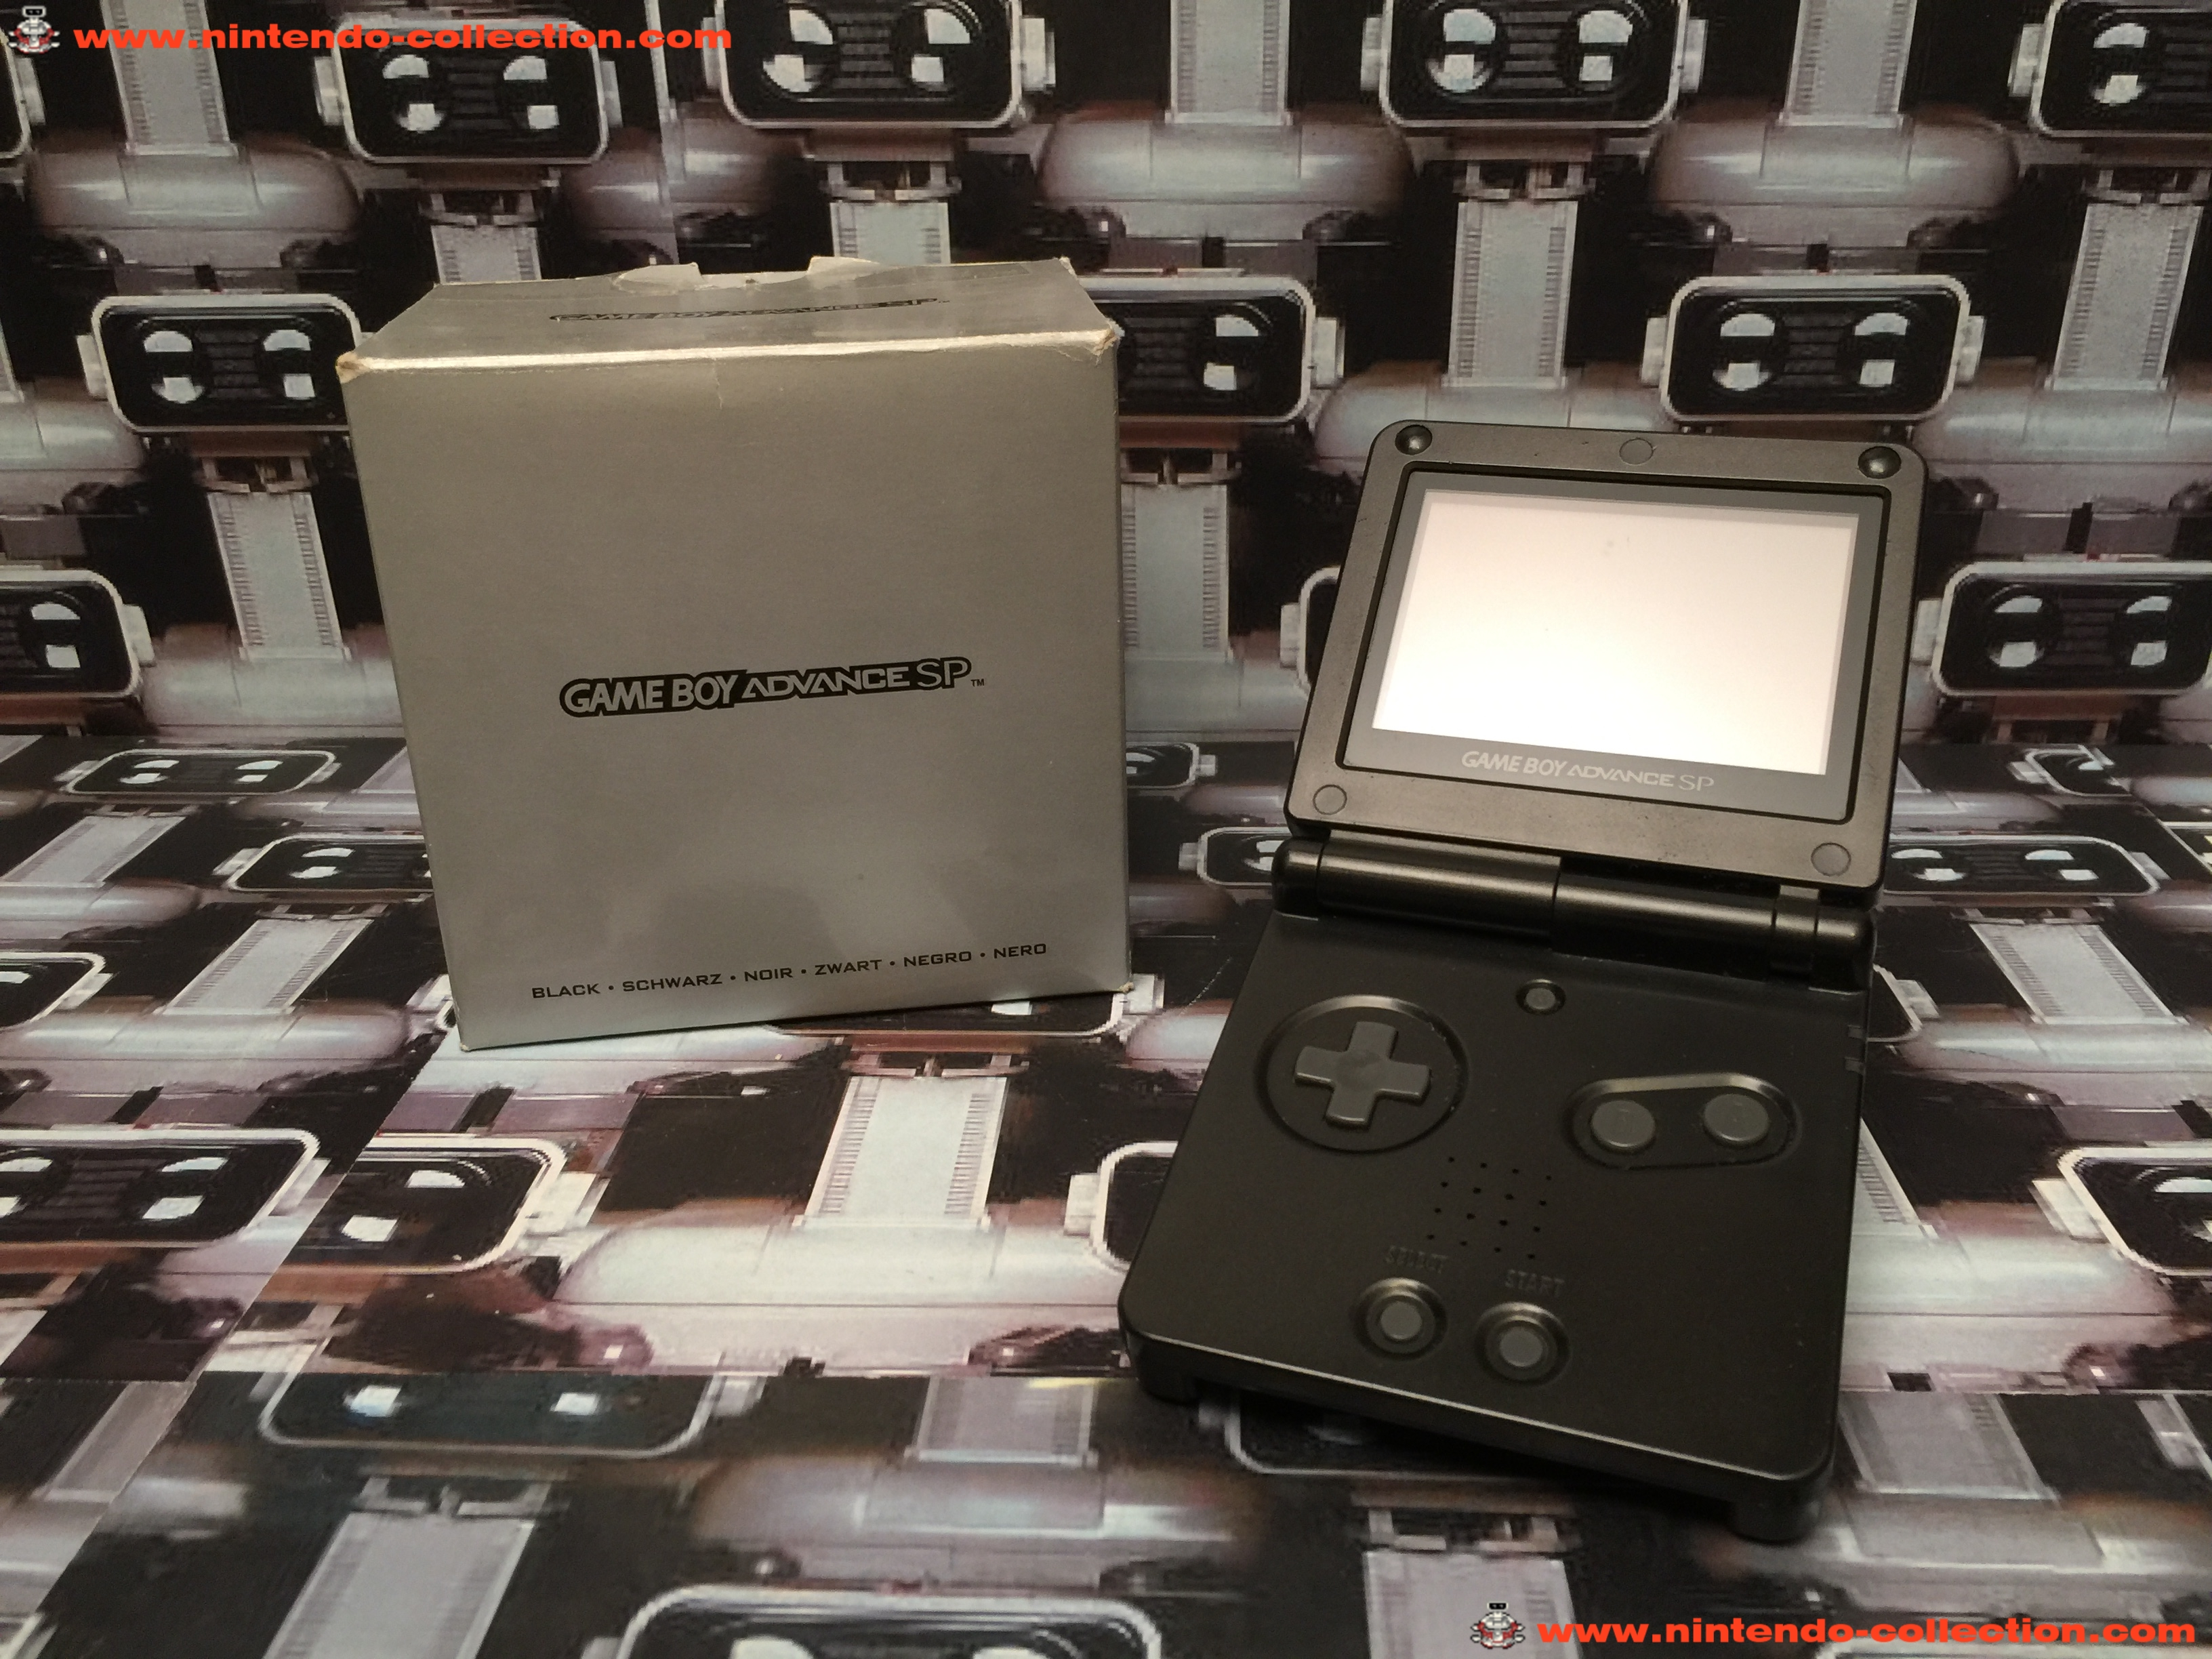 www.nintendo-collection.com - Gameboy Advance GBA SP Black Noir Edition europeenne european - 03